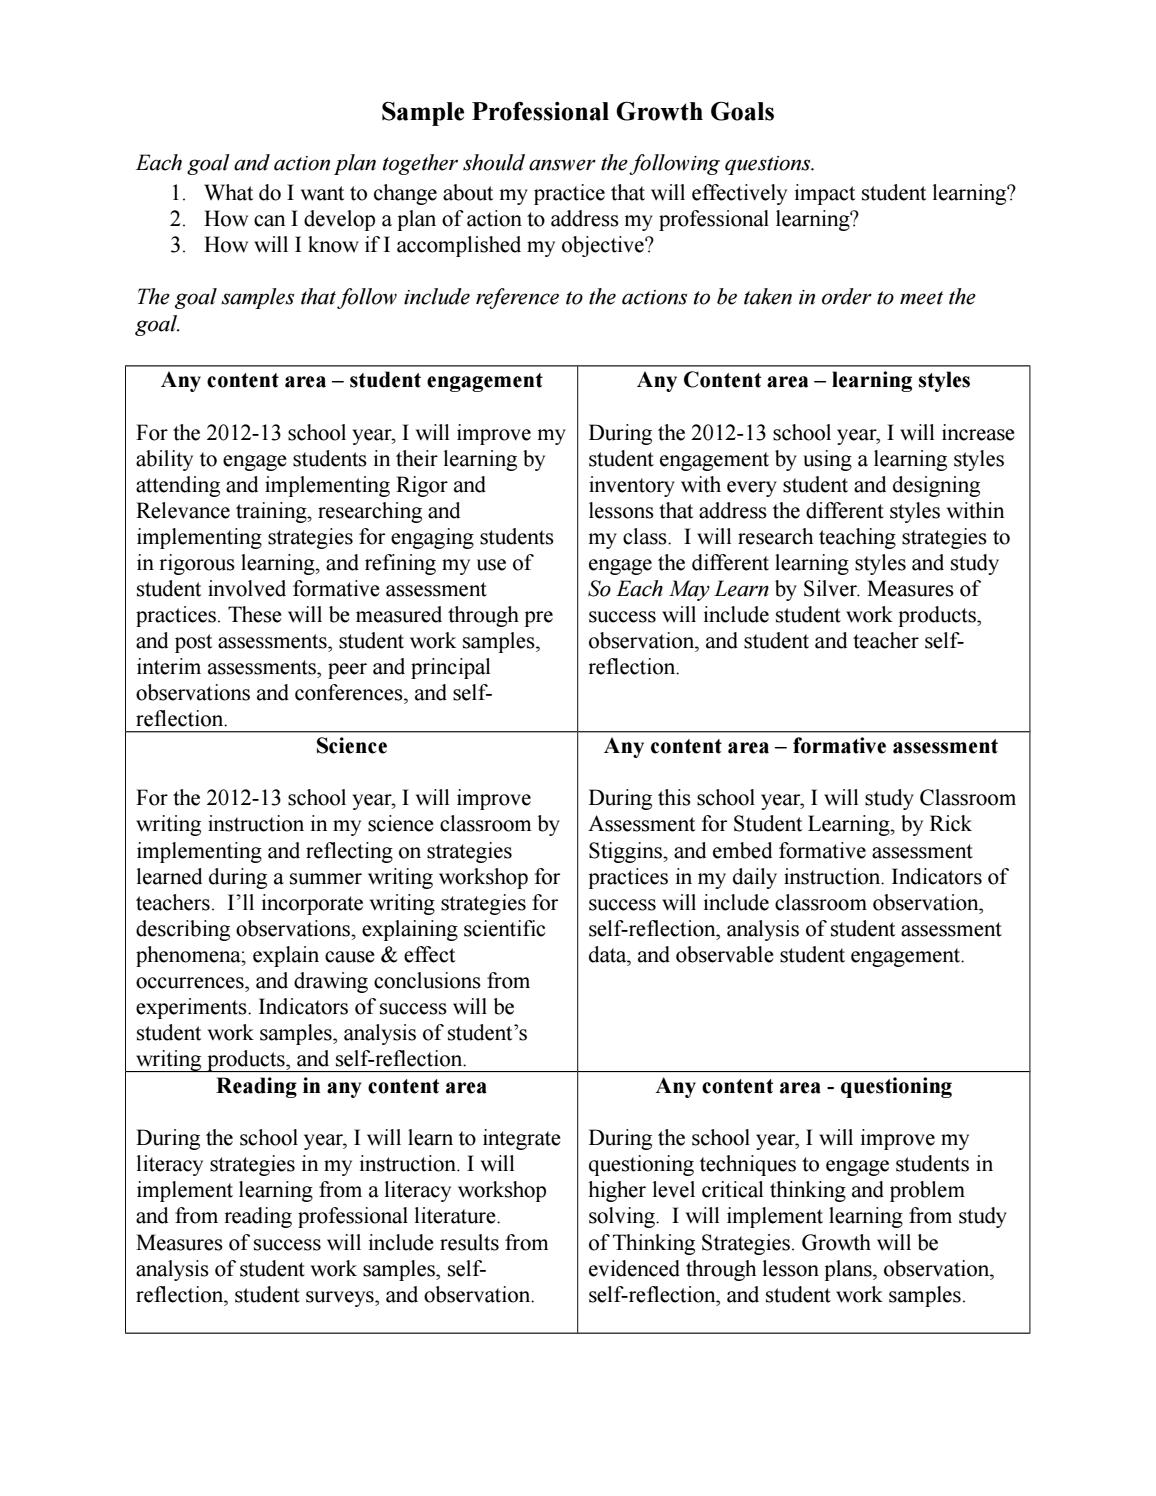 Student Teachers in School Practice: An Analysis of Learning Opportunities